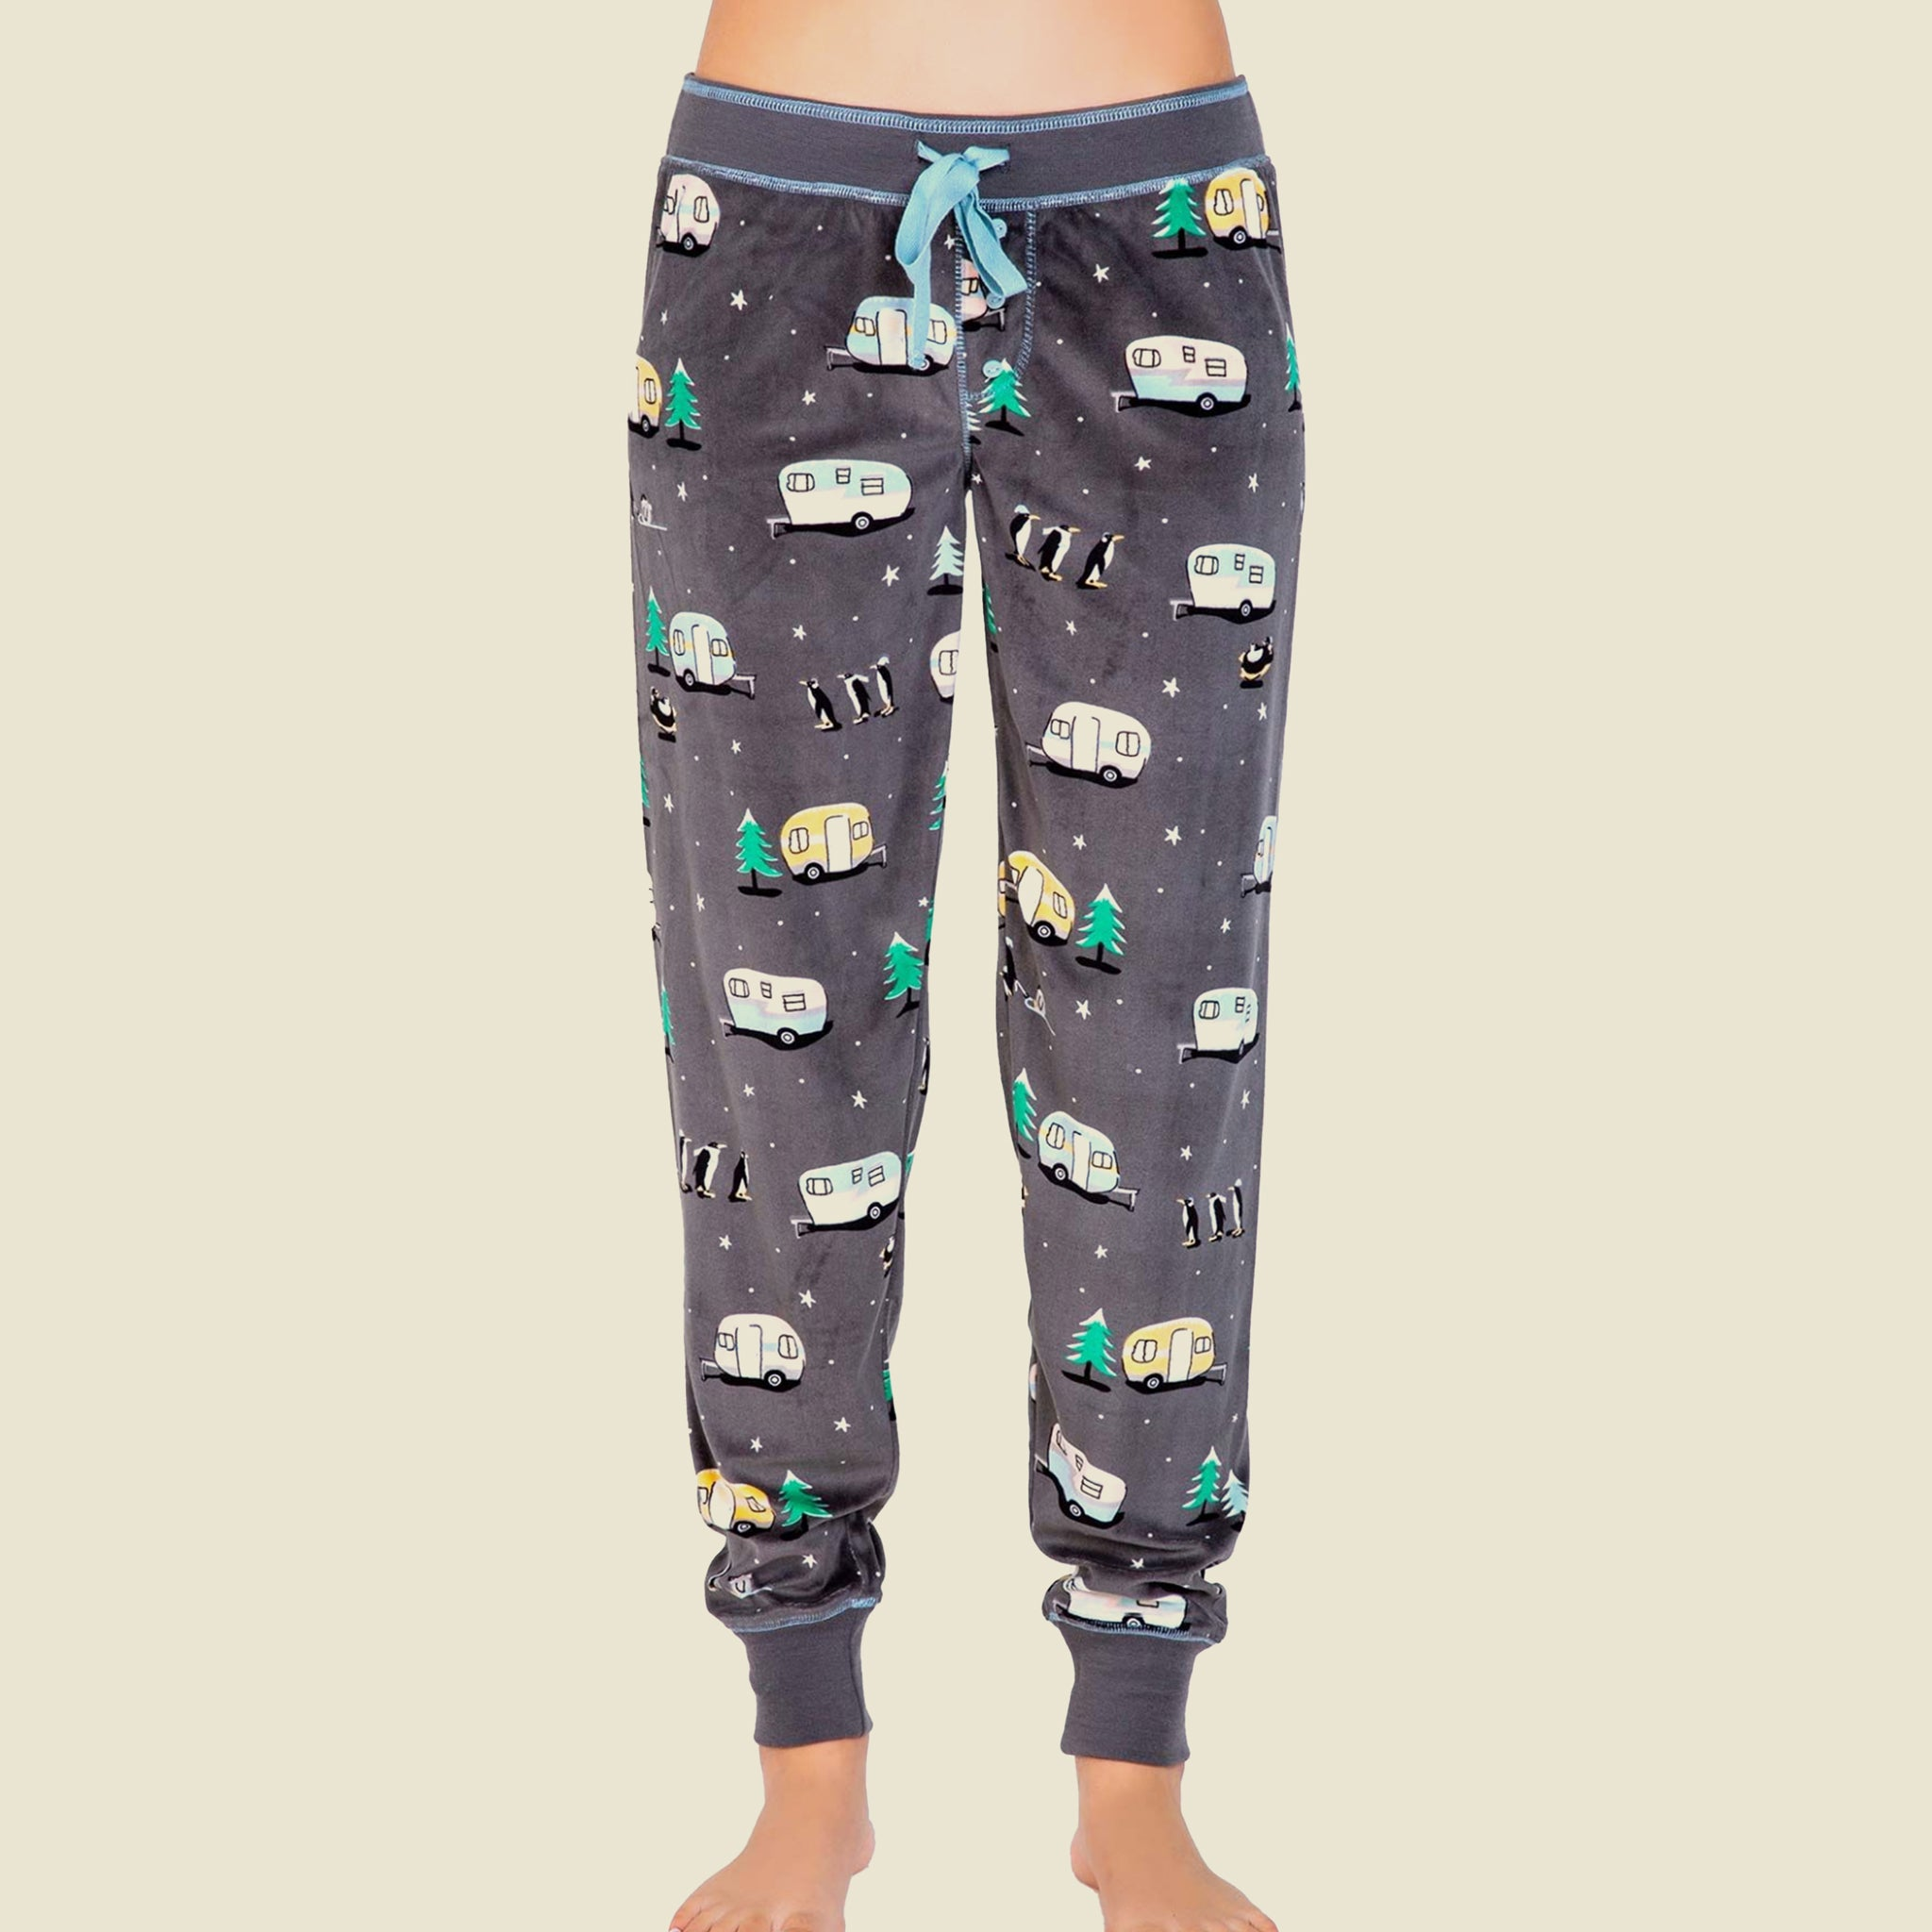 Chillout Camper Pant - Blackbird General Store